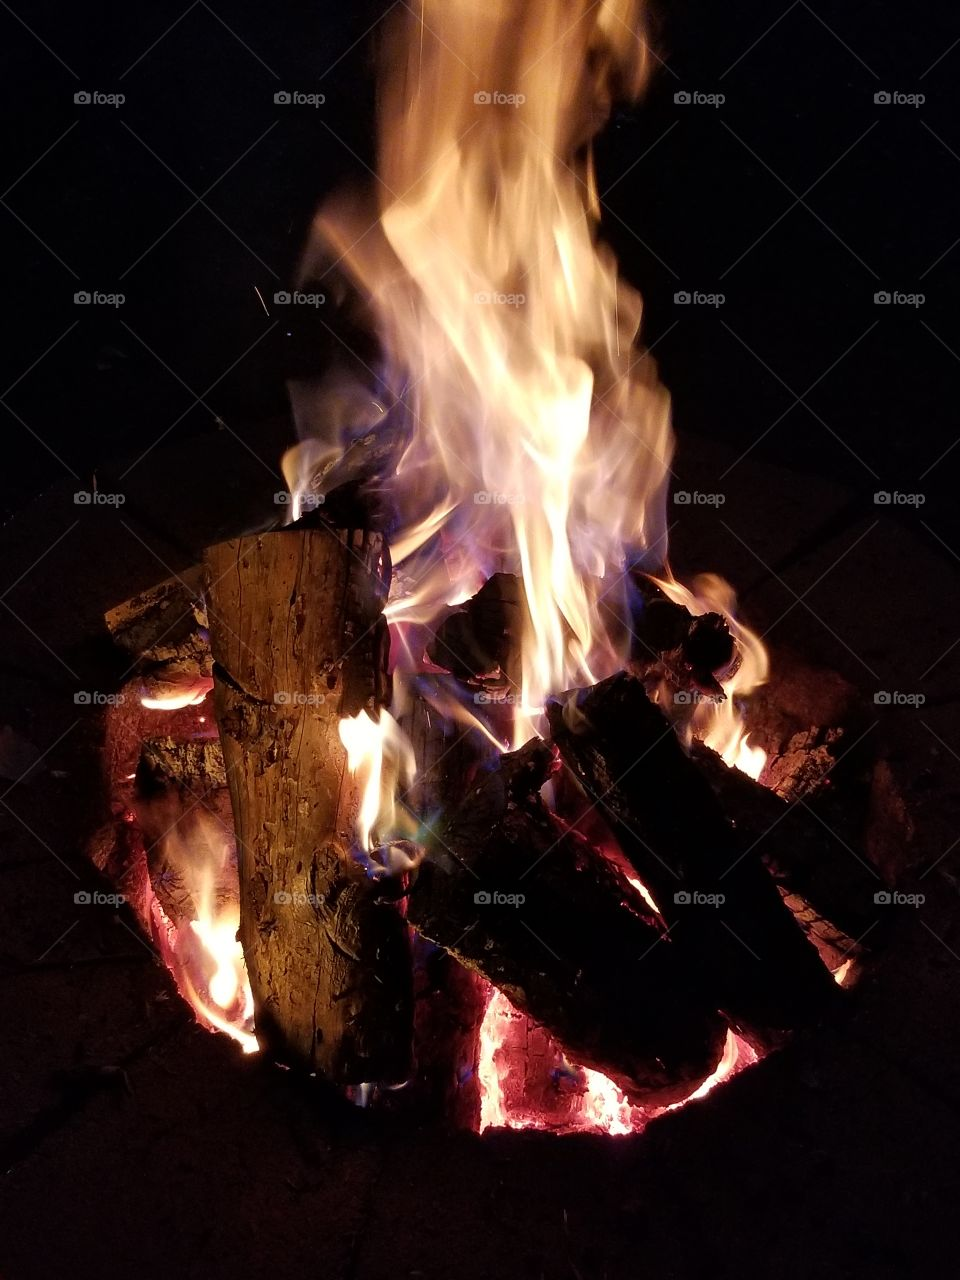 Firepit for a cold night